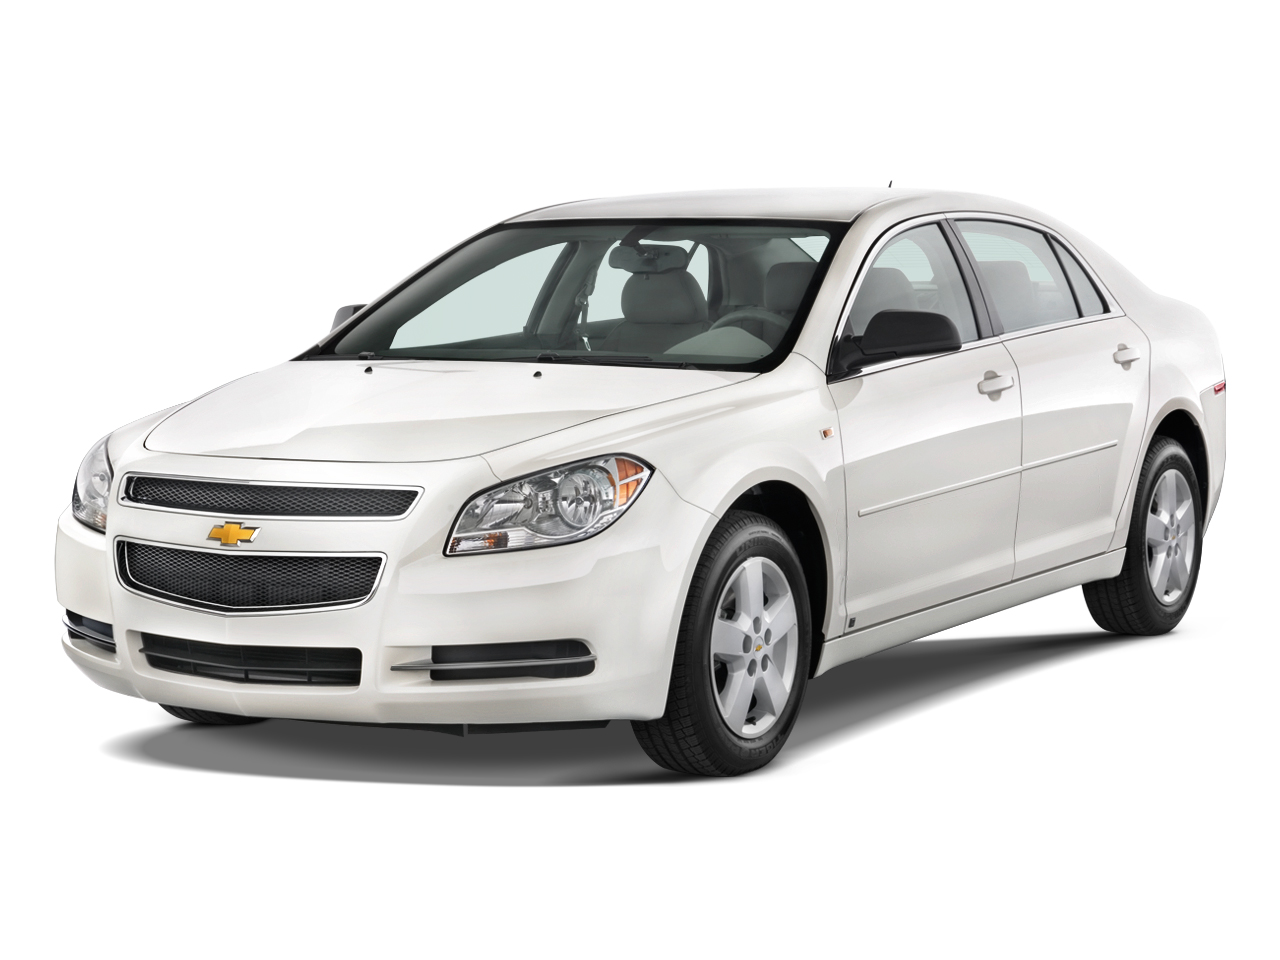 2011 Chevrolet Malibu (Chevy) Review, Ratings, Specs ...